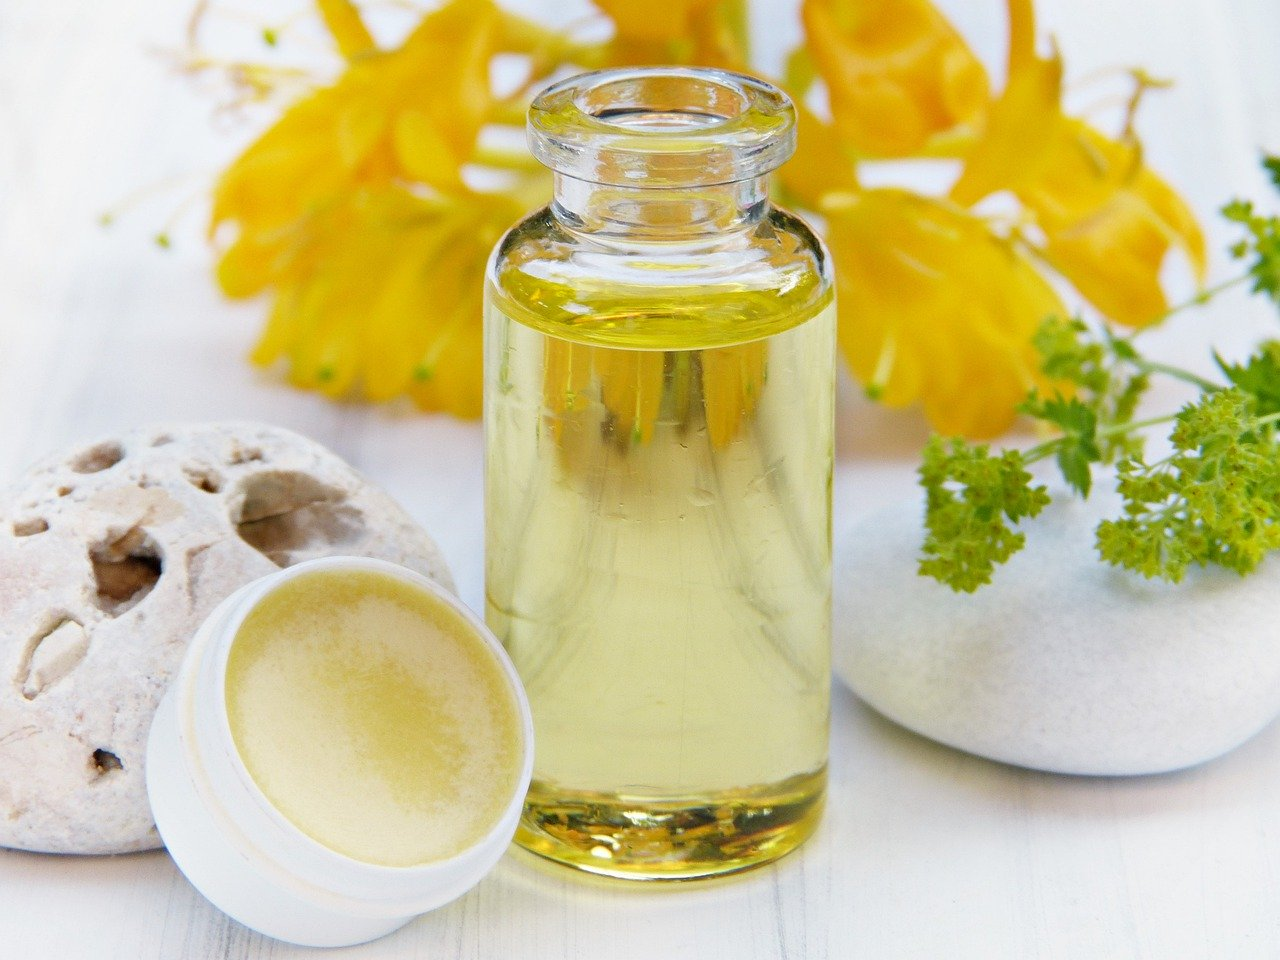 benefits of honey include skin products